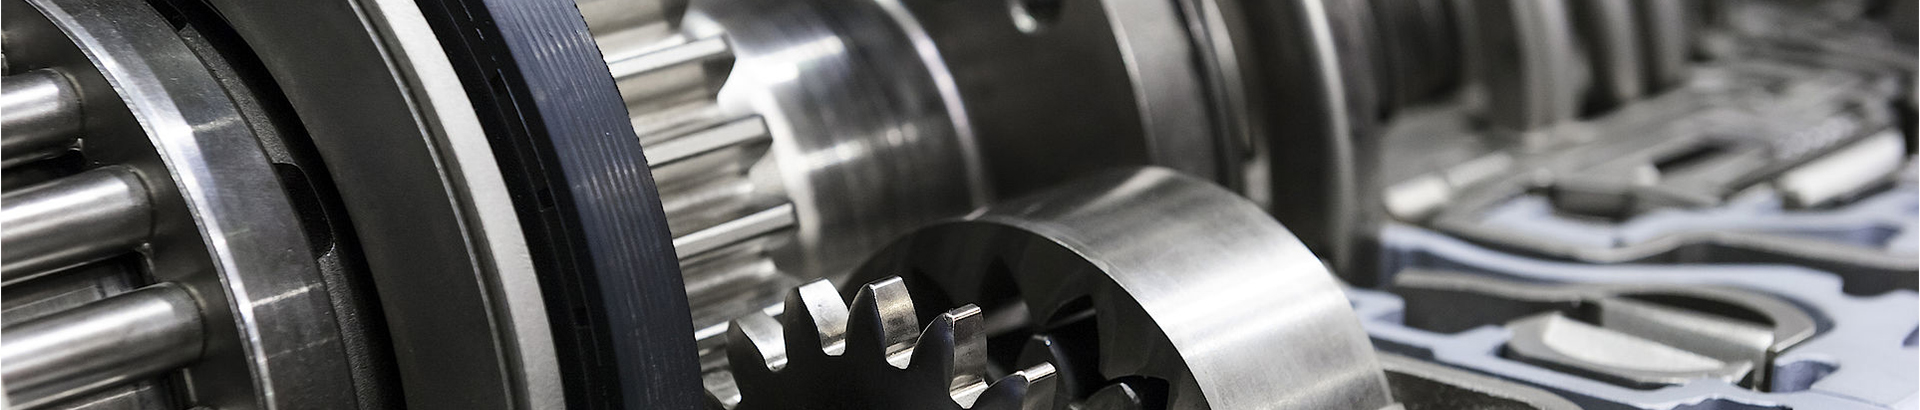 The Development Trend of General Machinery and Equipment Manufacturing Industry